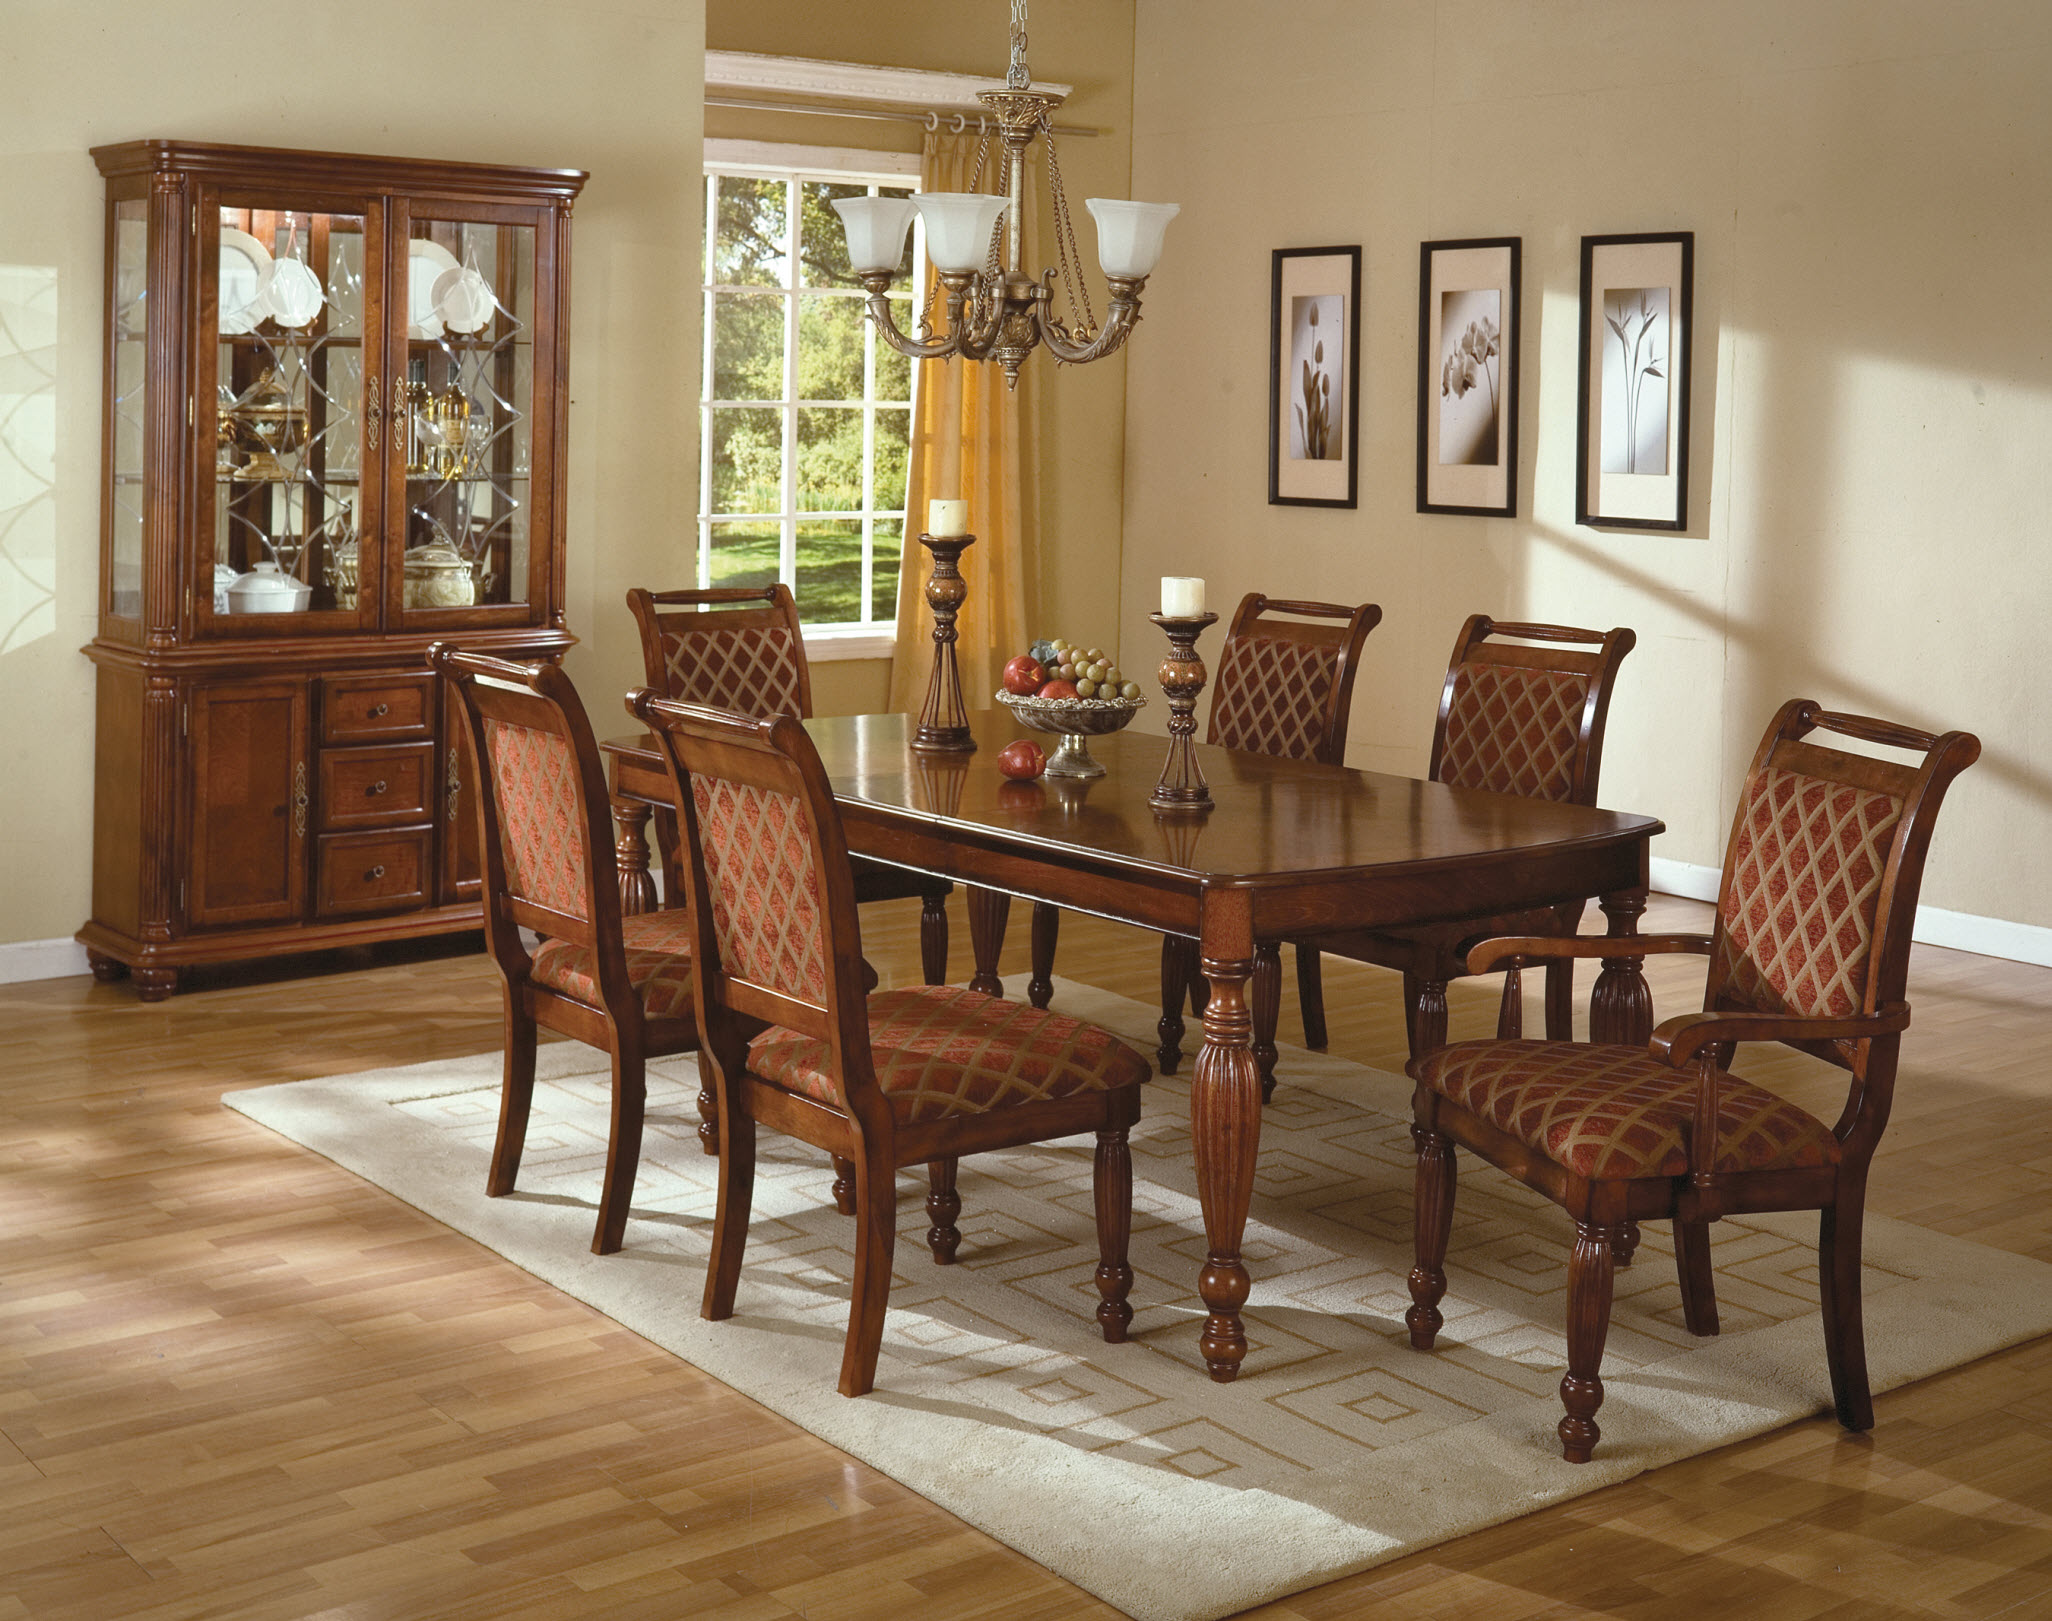 Old Wood Dining Room Chairs dining room chairs to complete your dining table | custom home design